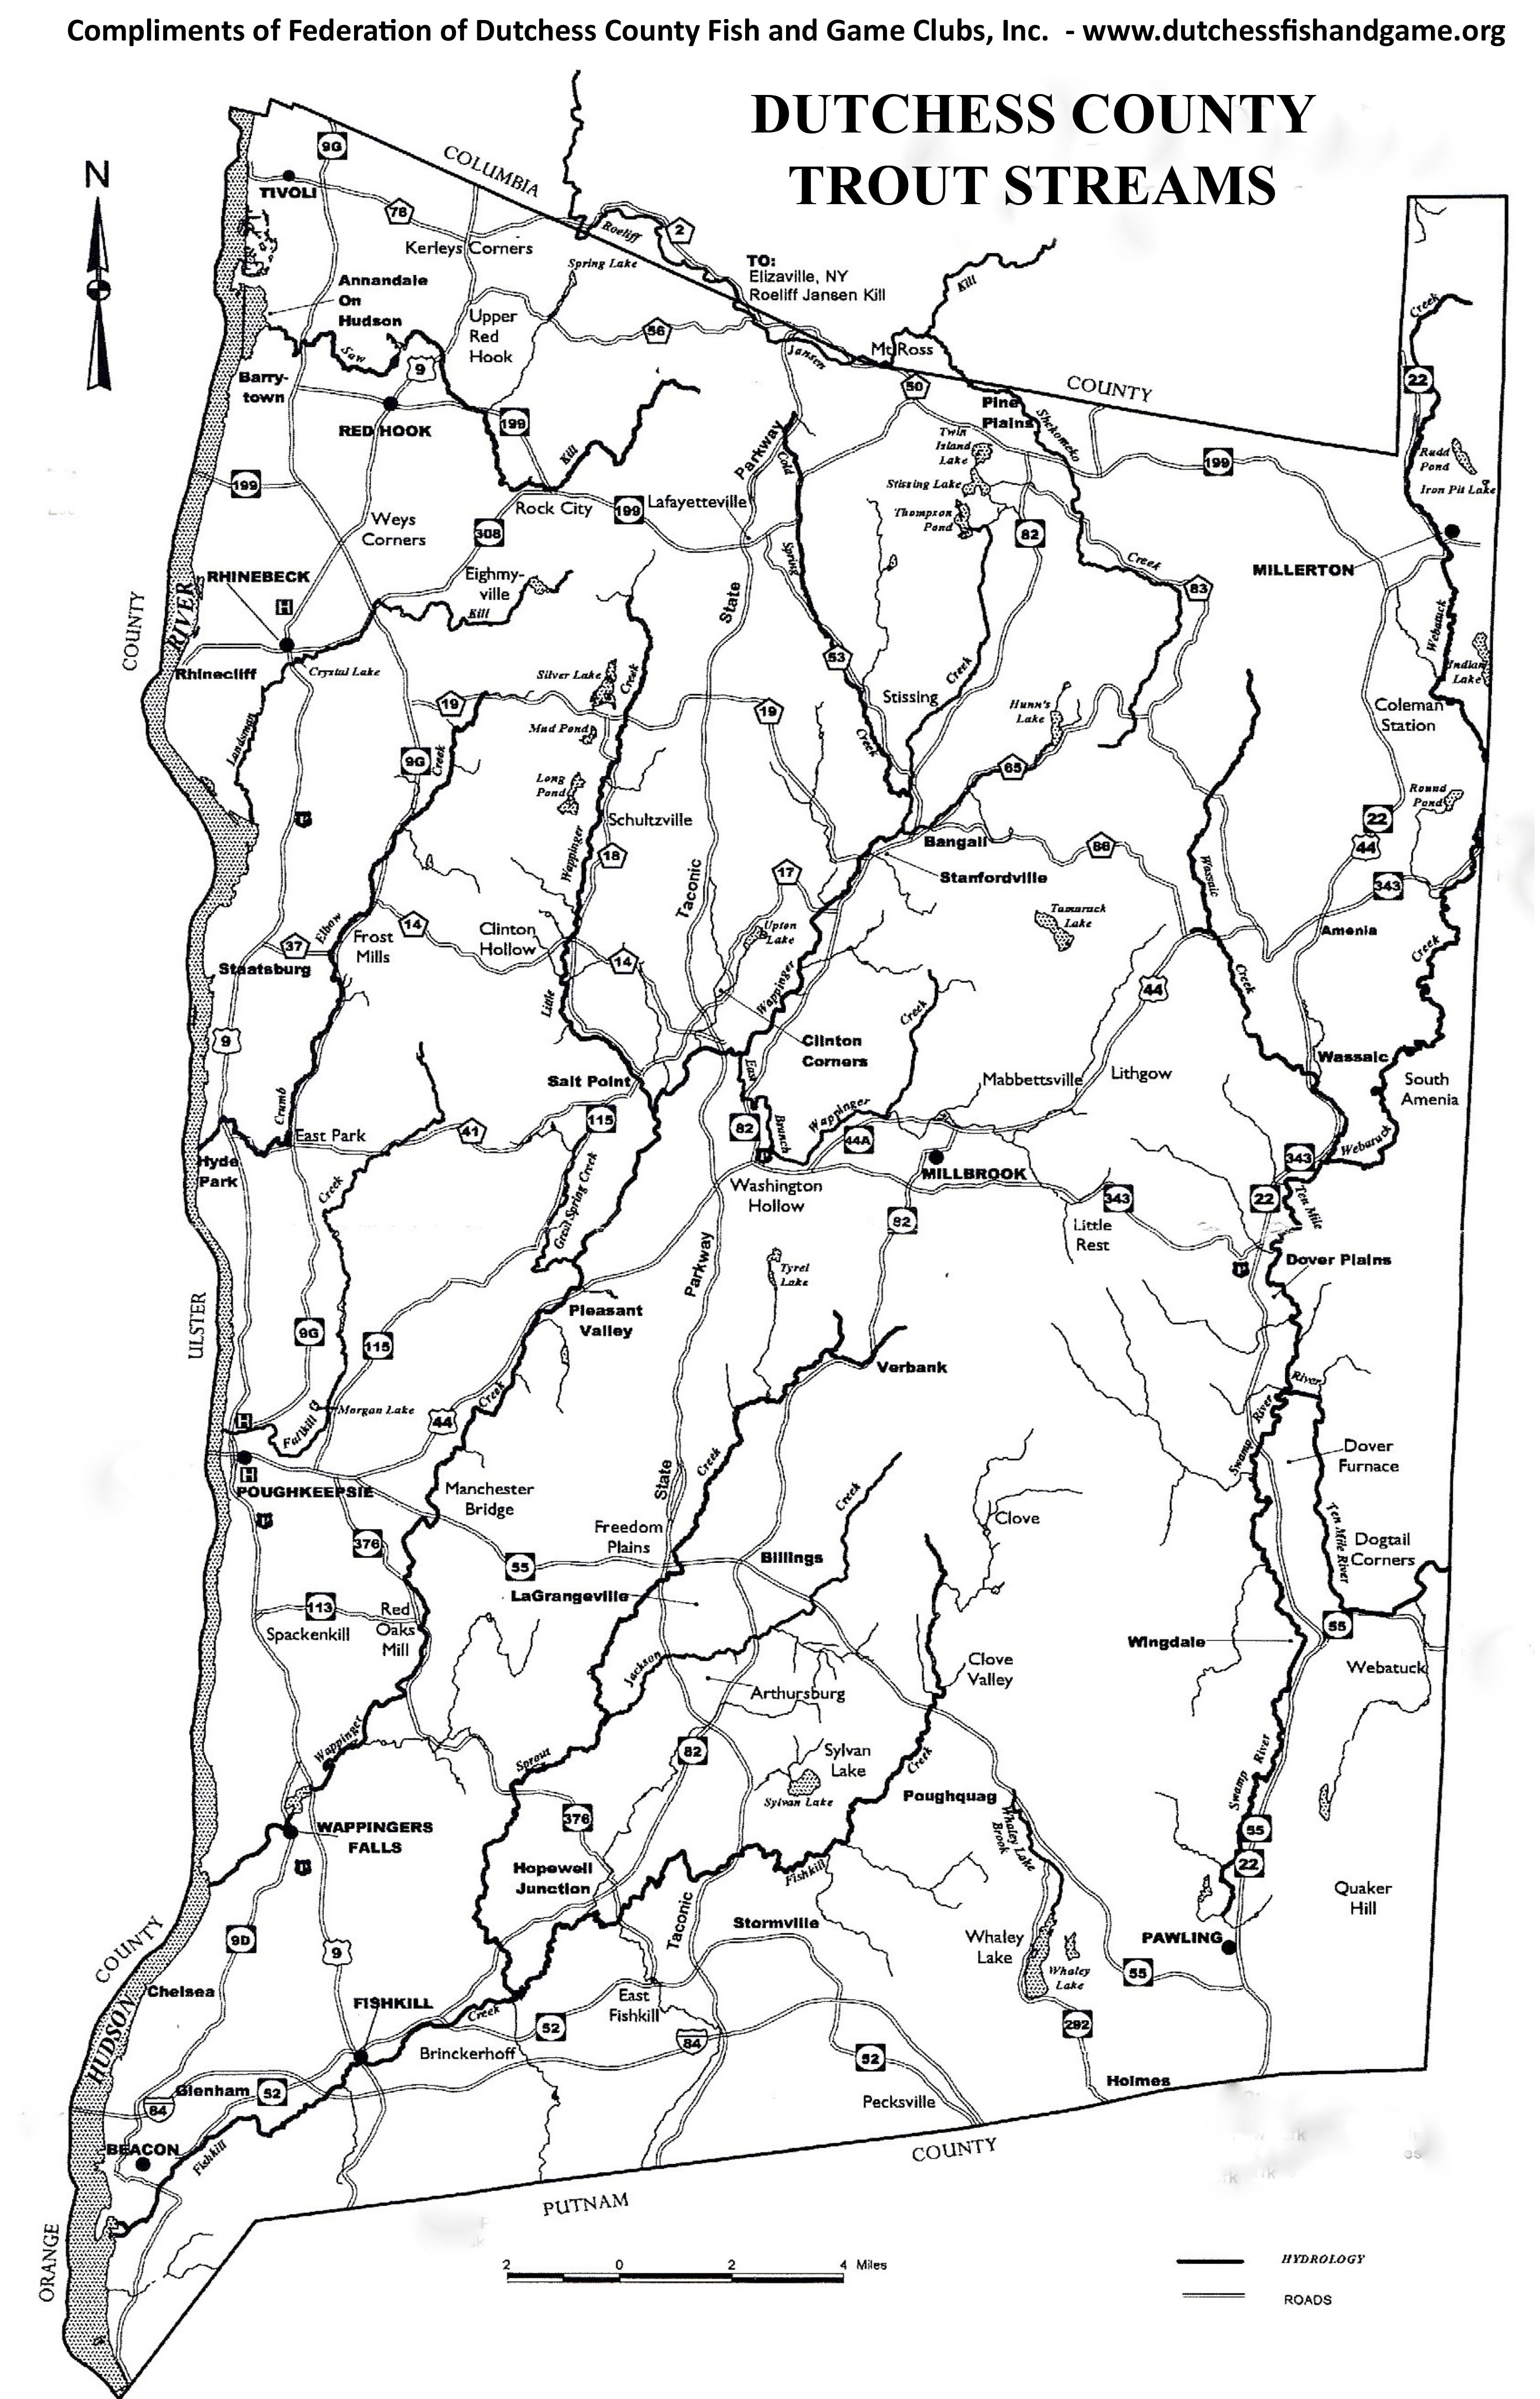 The Dutchess County stream map.